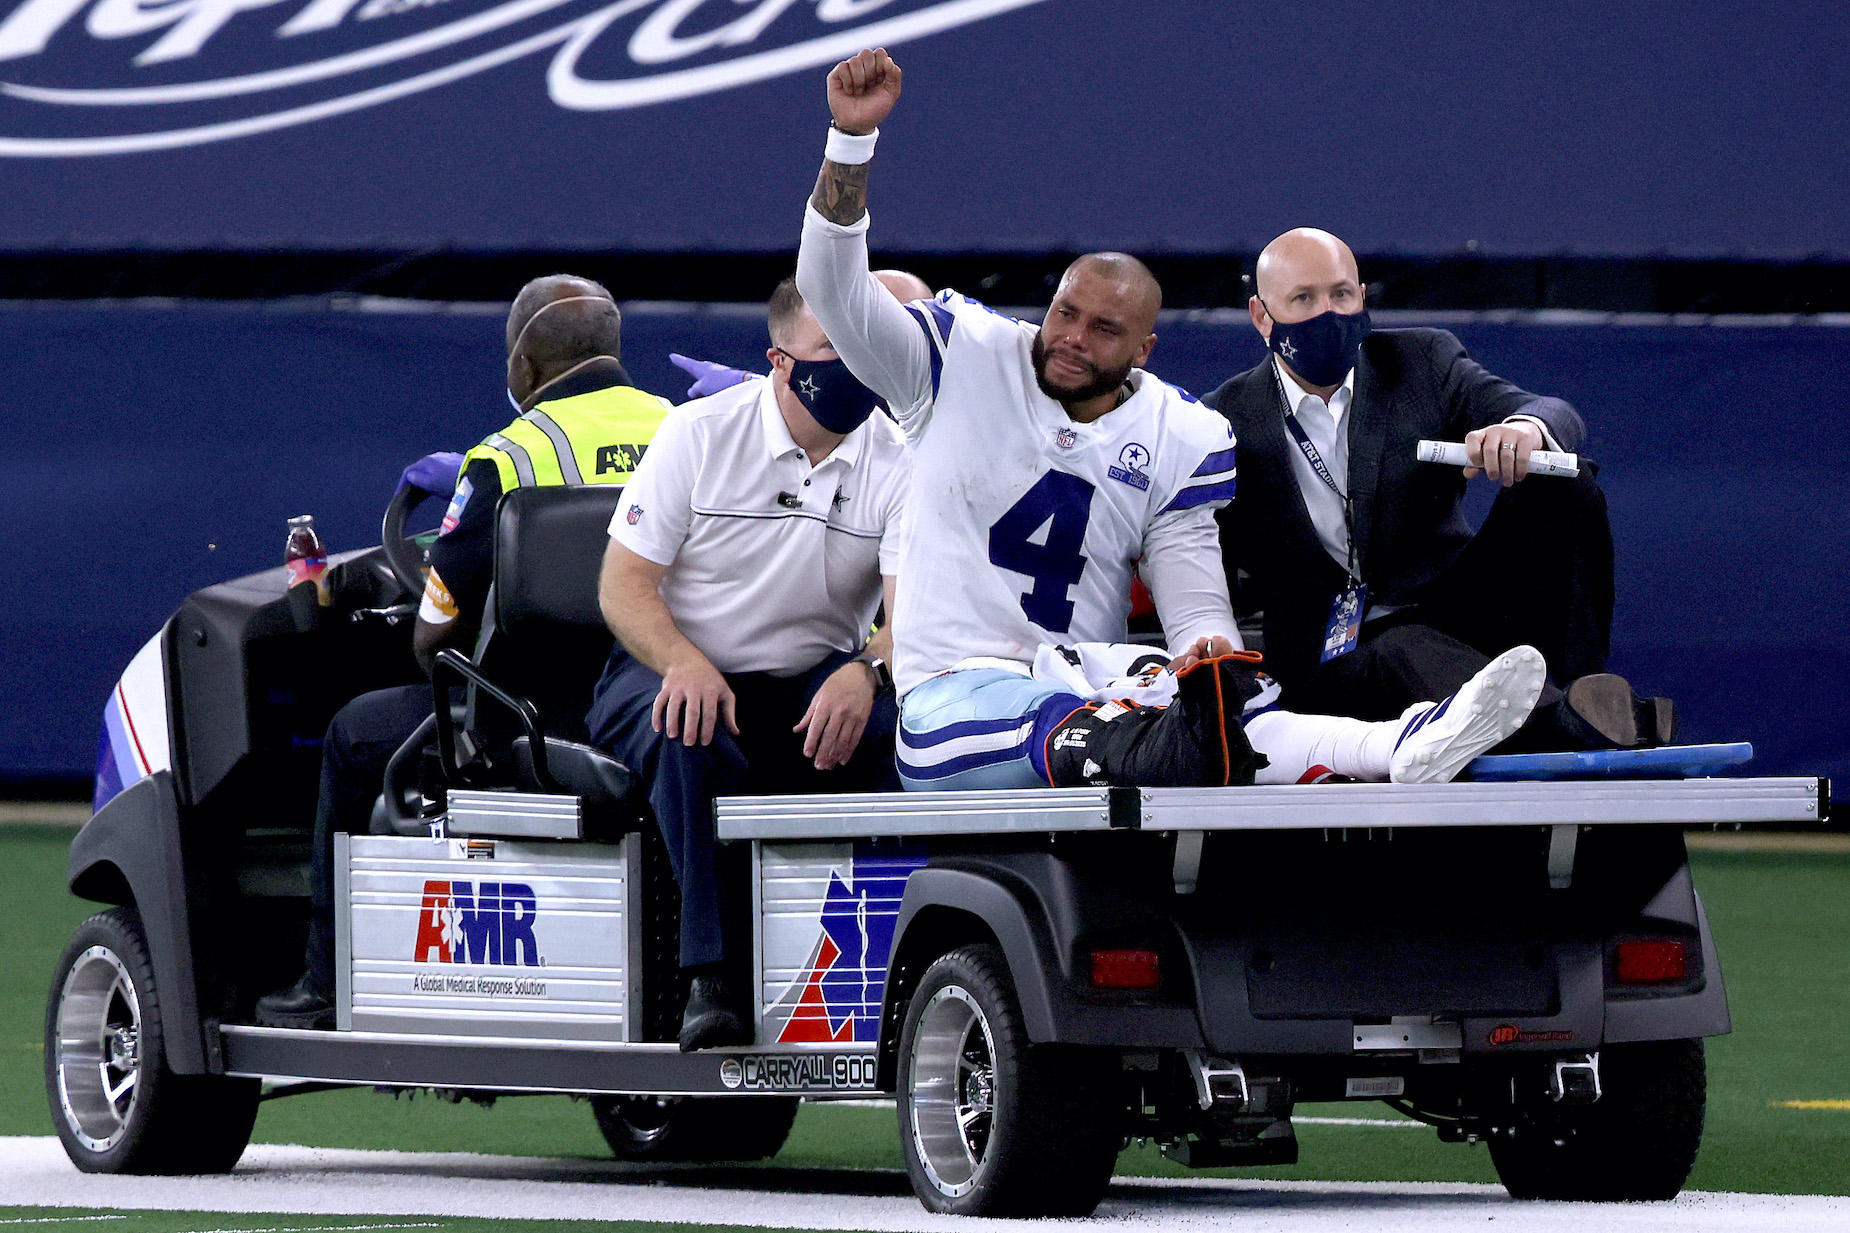 Dak Prescott Recalls Exactly How It Felt to Suffer a Season-Ending Ankle Injury: 'I Just Wanted to Get Off the Field So Bad, and I Couldn't'